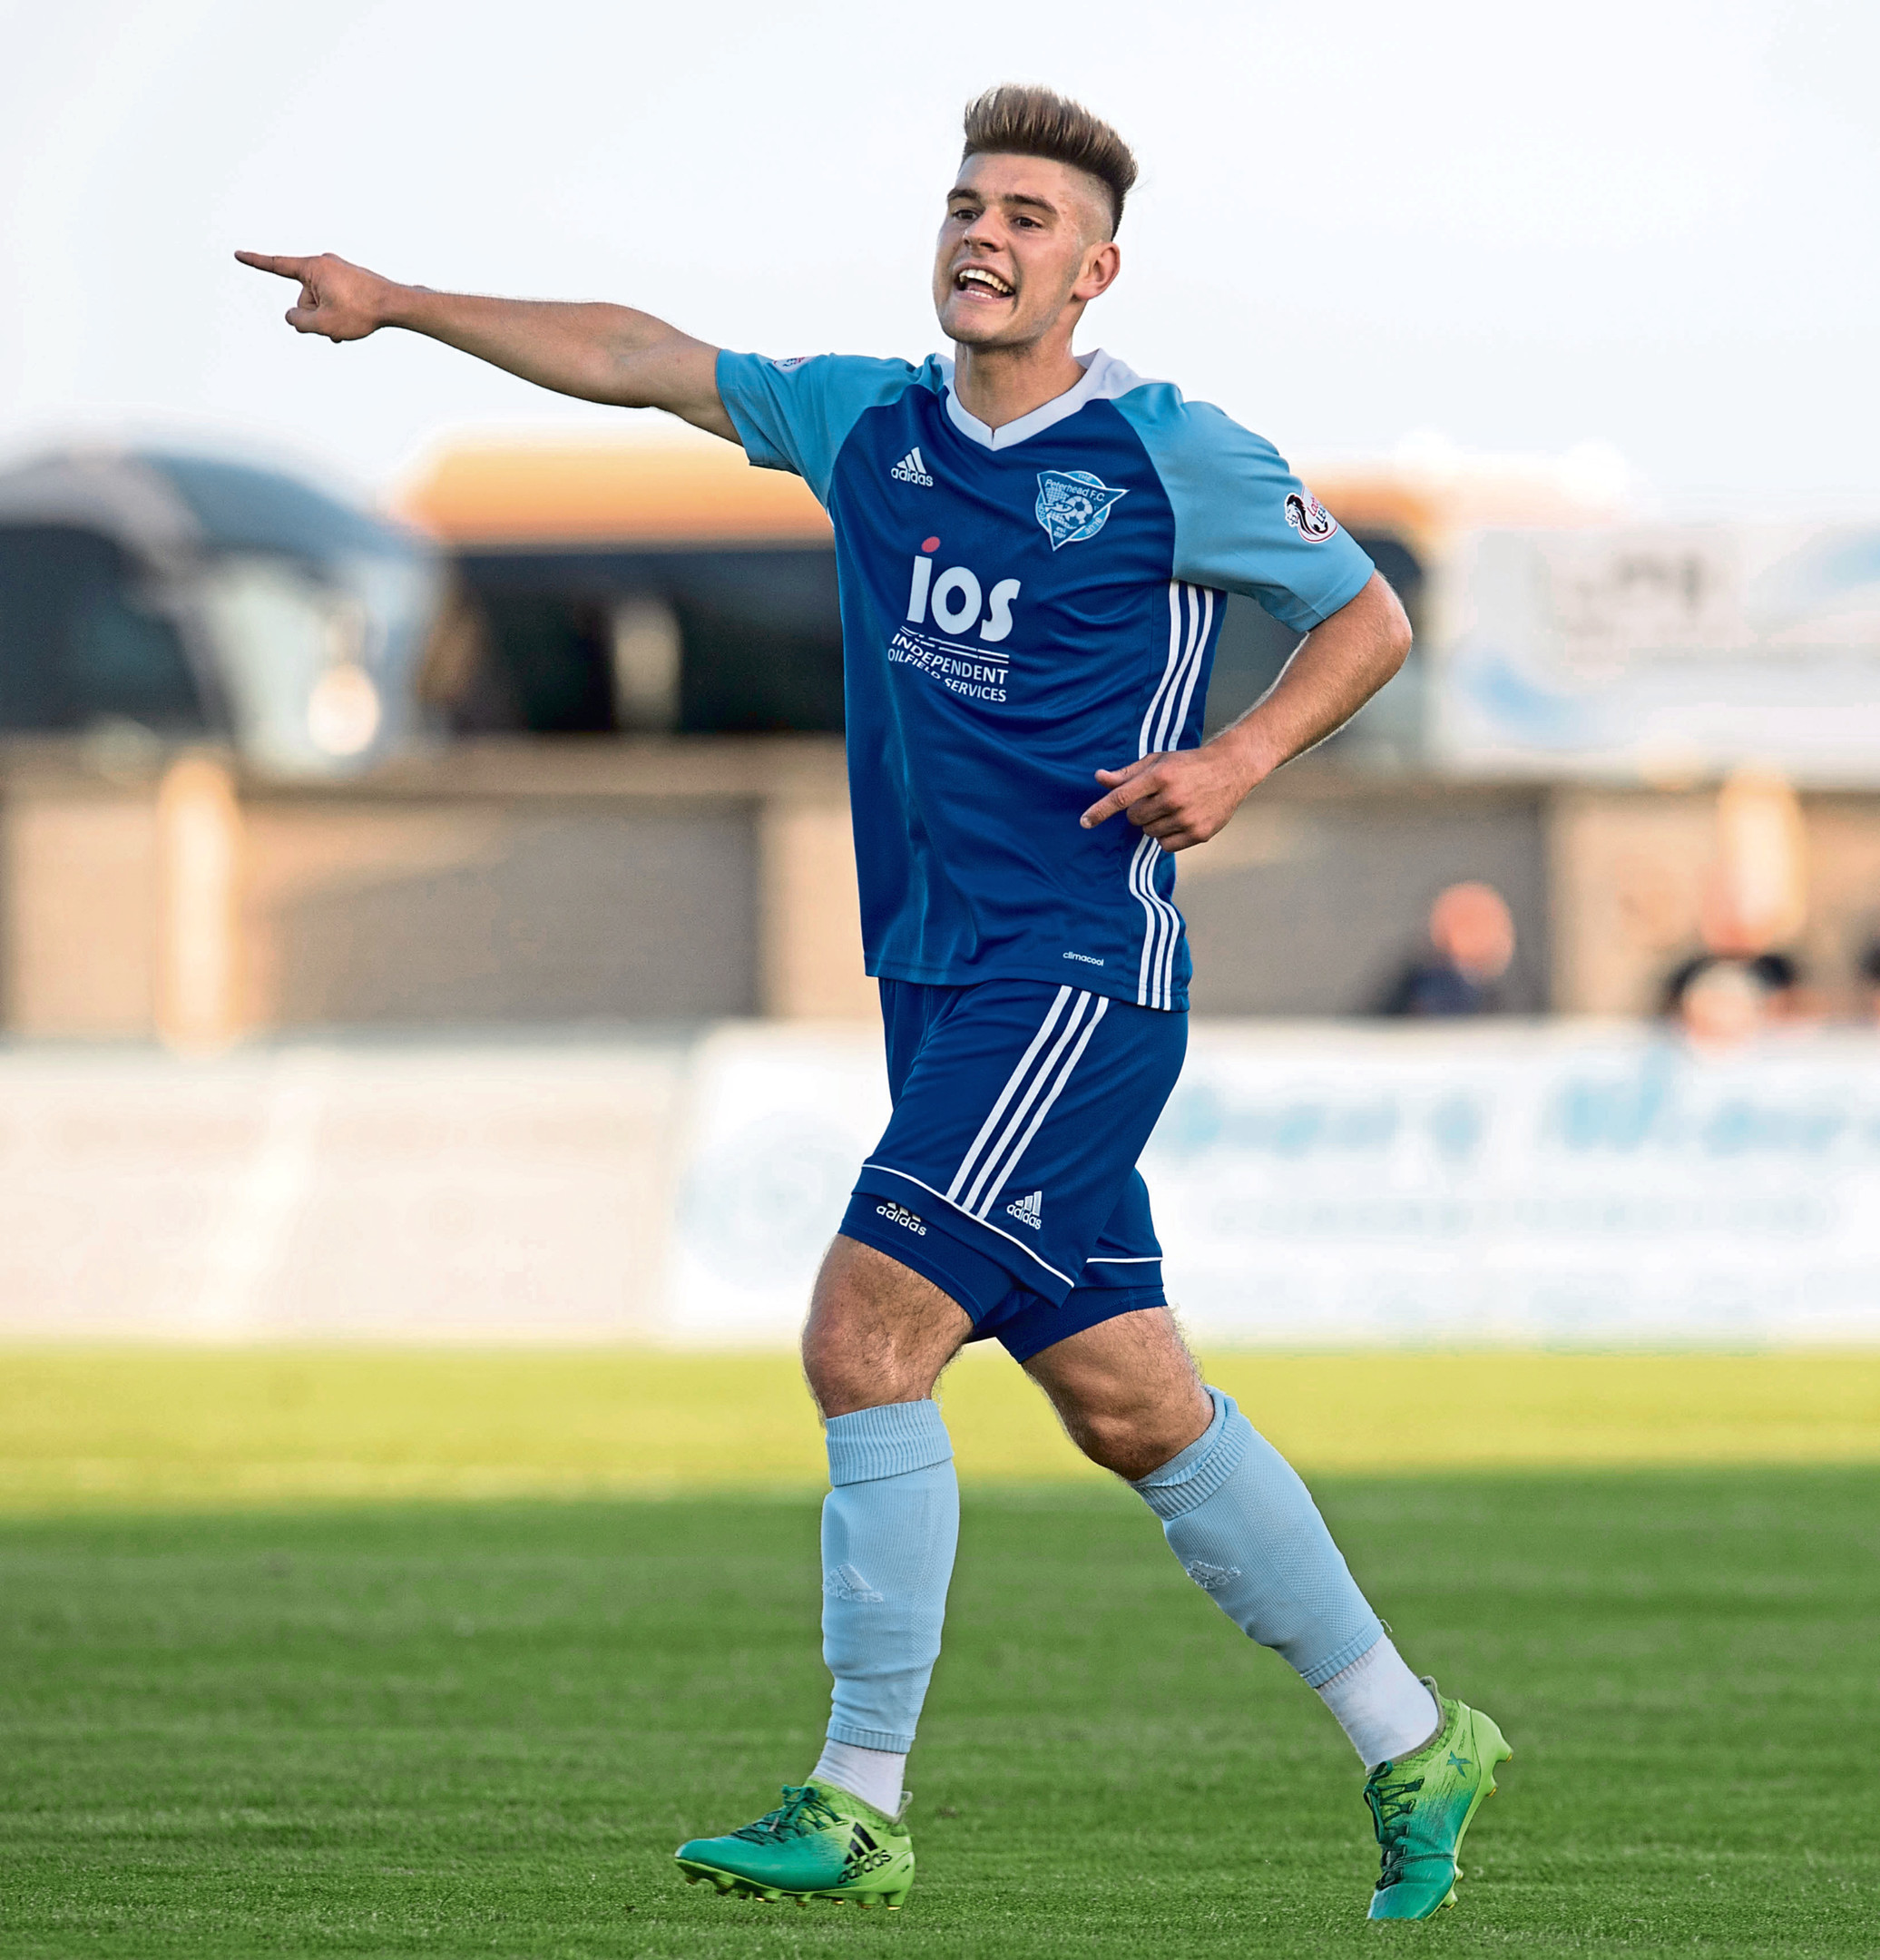 Jack Leitch in action for Peterhead.